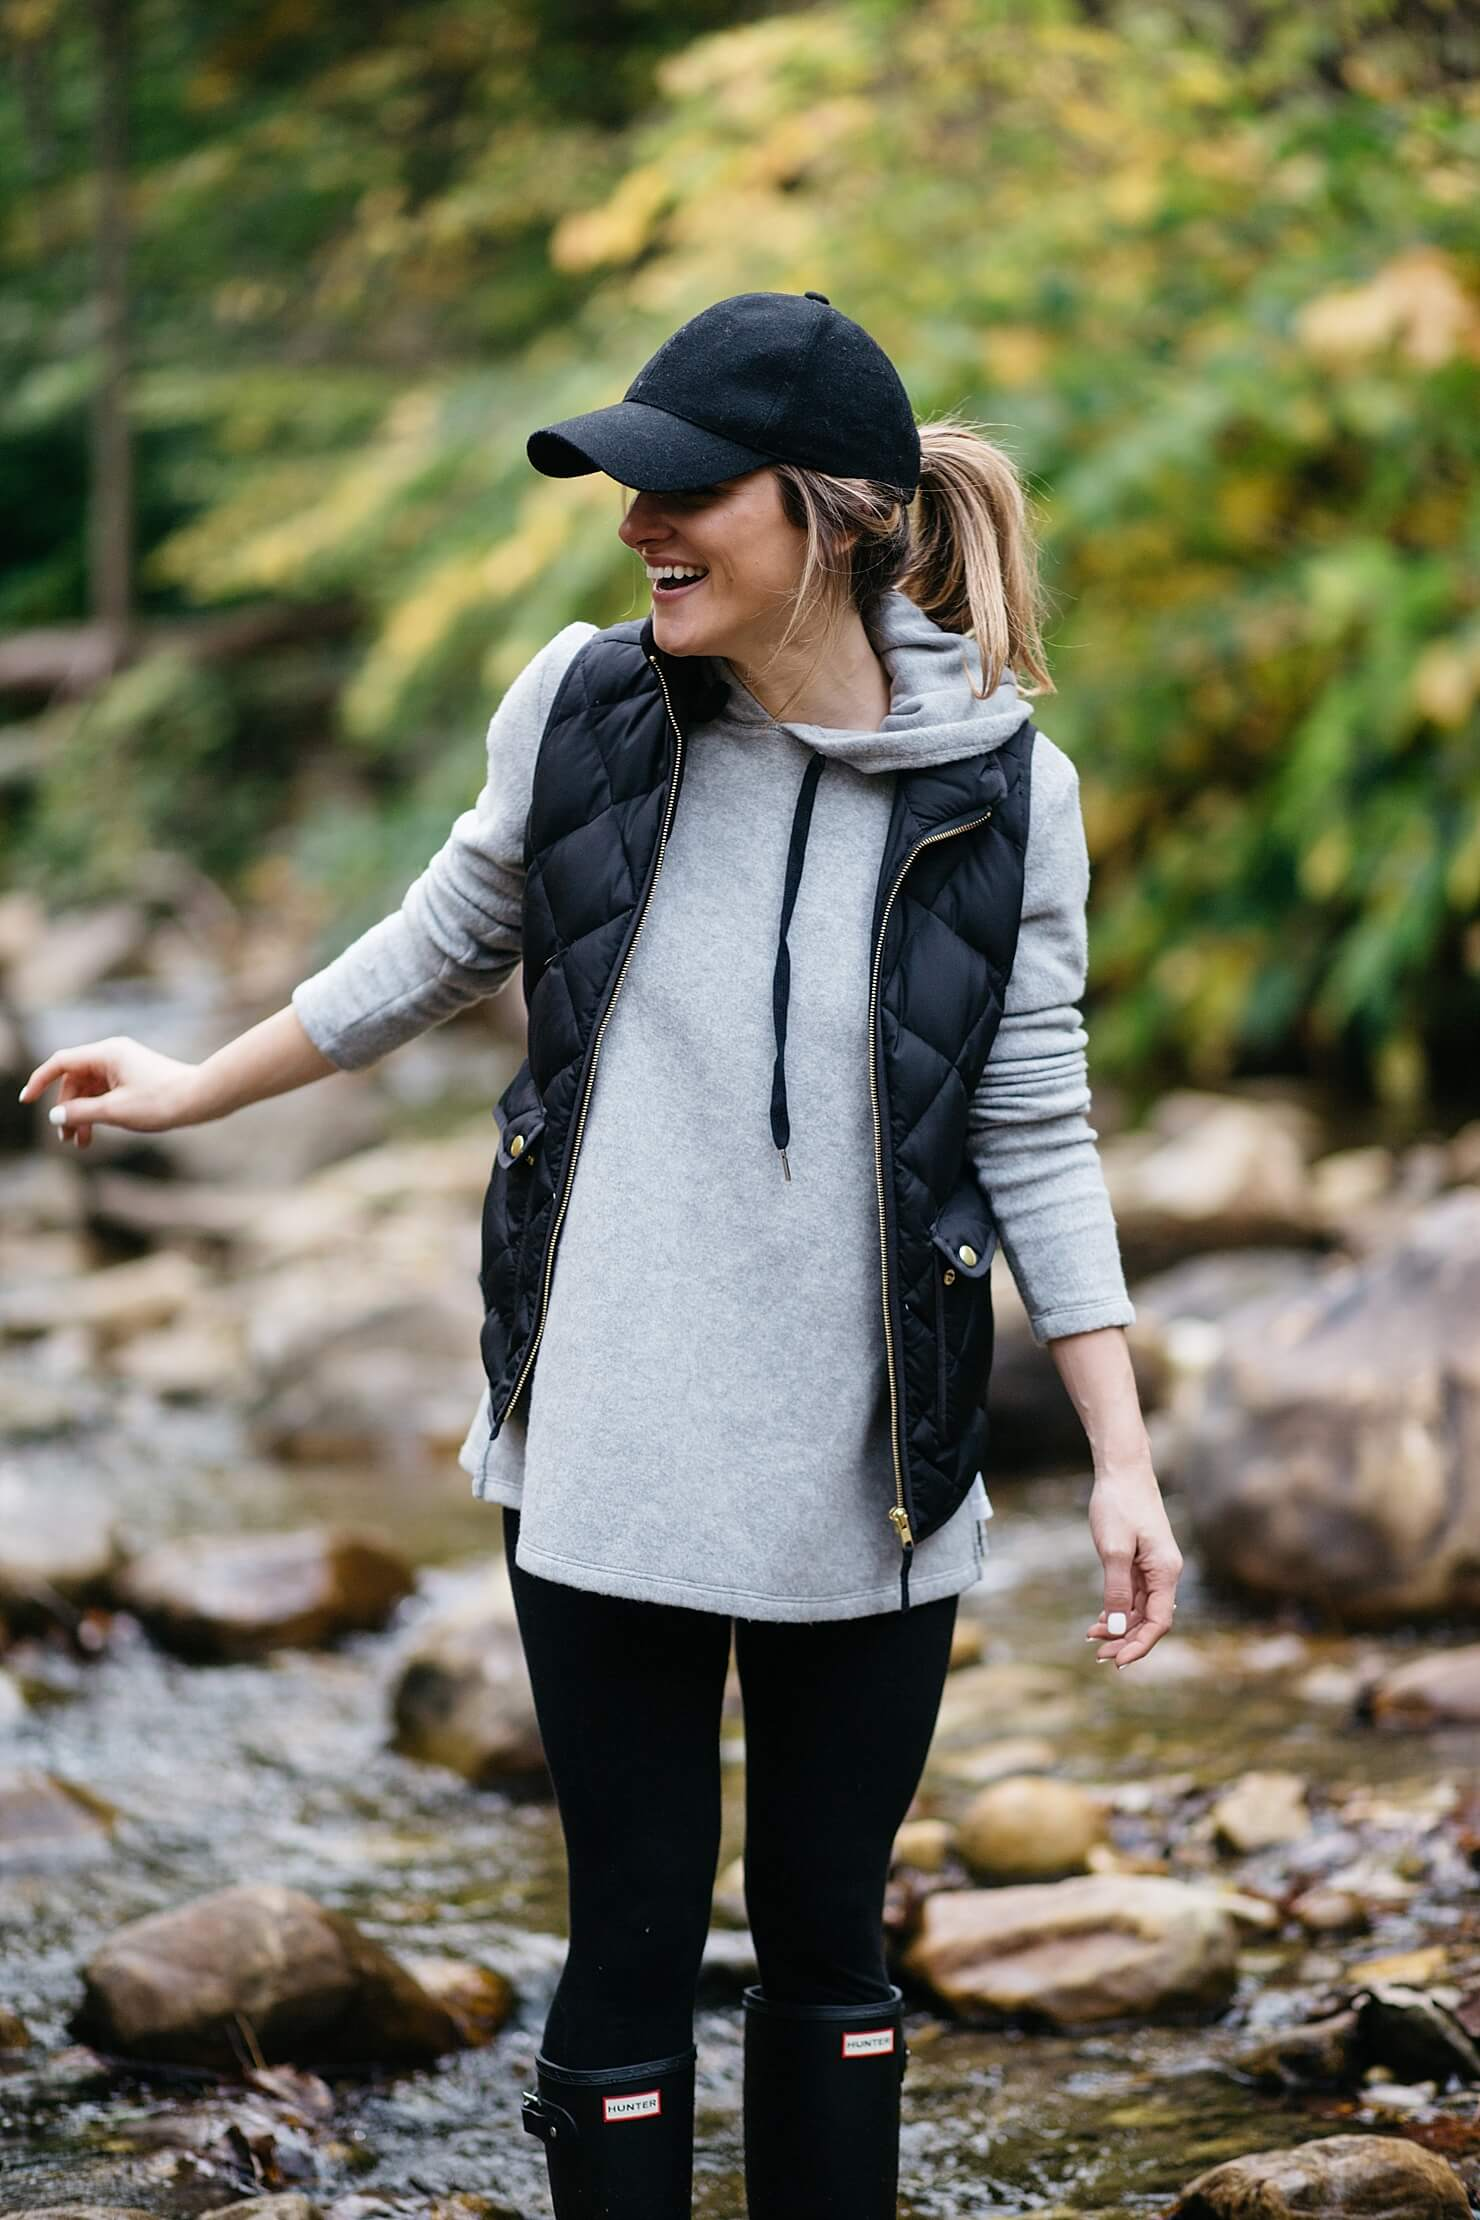 hunter boots outfit with a baseball cap and vest